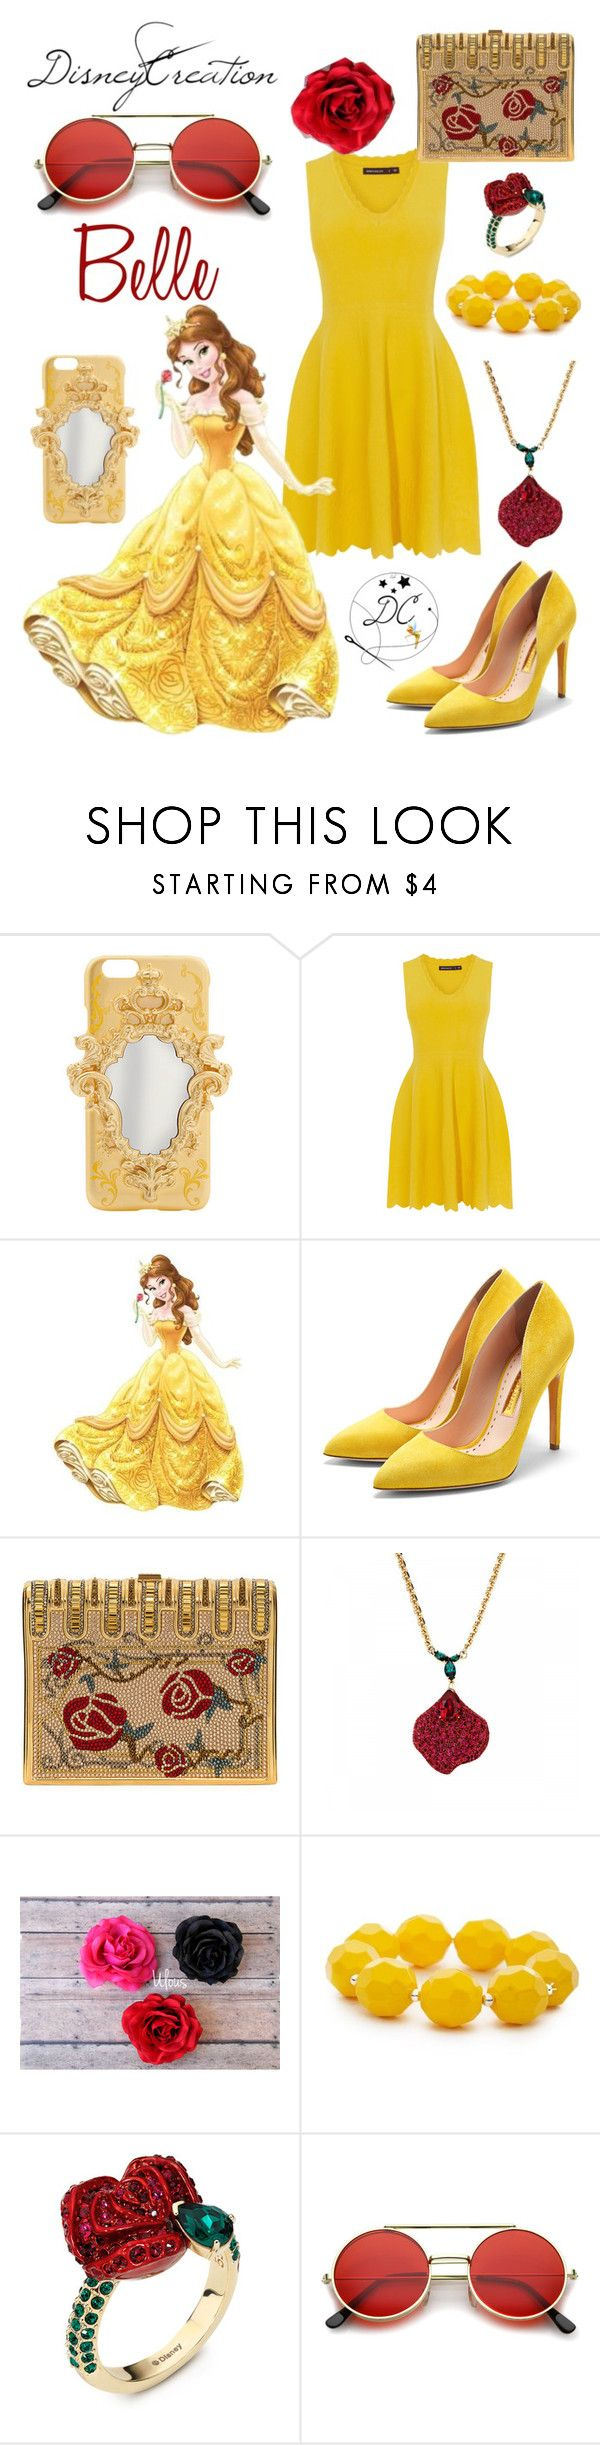 """""""Belle - By DisneyCreation"""" by disneycreation ❤ liked on Polyvore featuring York Wallcoverings, Rupert Sanderson, Judith Leiber, Atelier Swarovski, Kim Rogers and ZeroUV"""